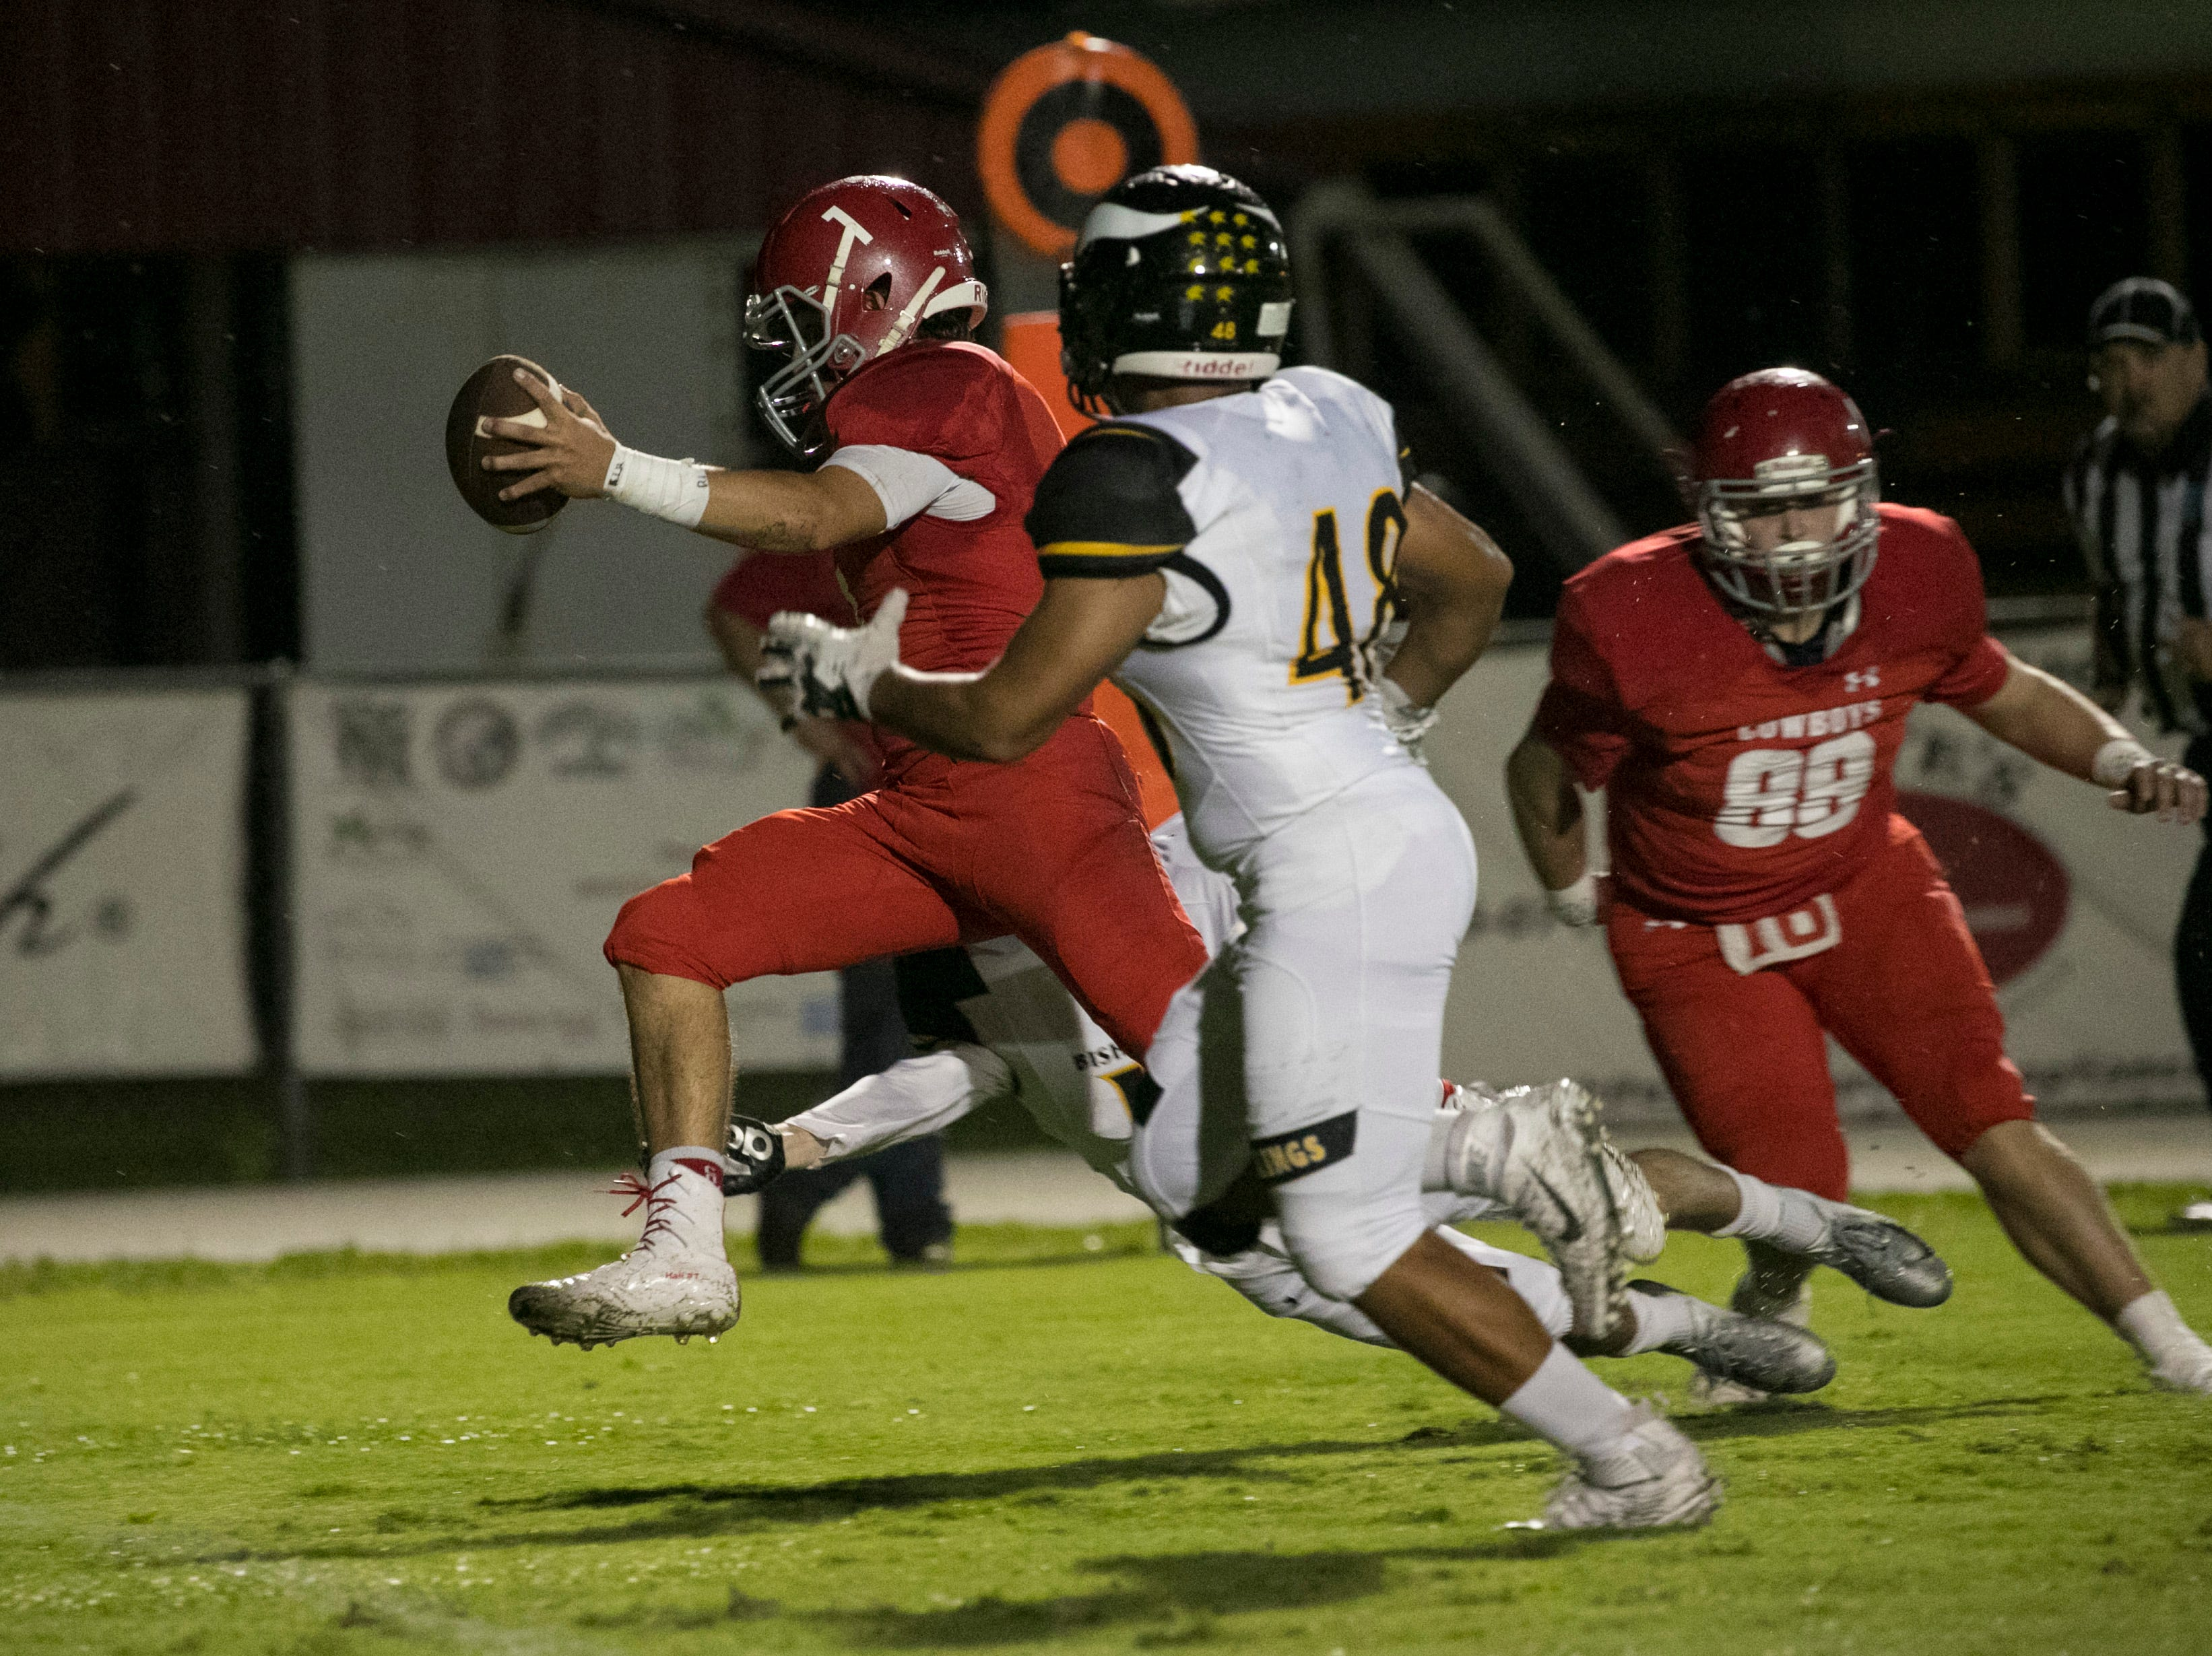 Bryce Hall of LaBelle runs in a touchdown in the first half against Bishop Verot on Friday night, Sept. 21, 2018, at LaBelle High School.